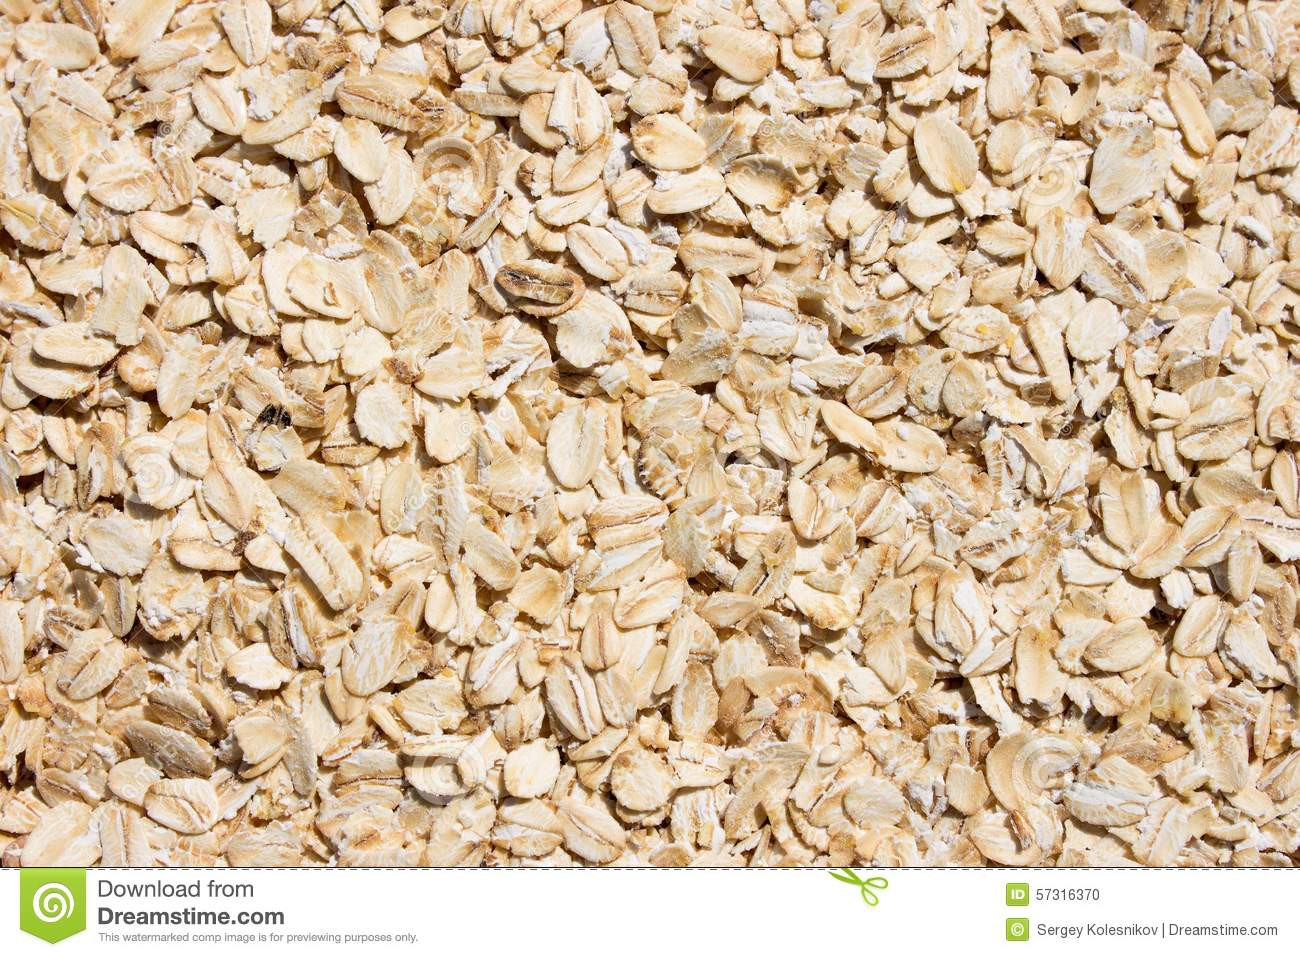 365 Organic Old Fashioned Rolled Oats  What is rolled oats images what causes interstitial